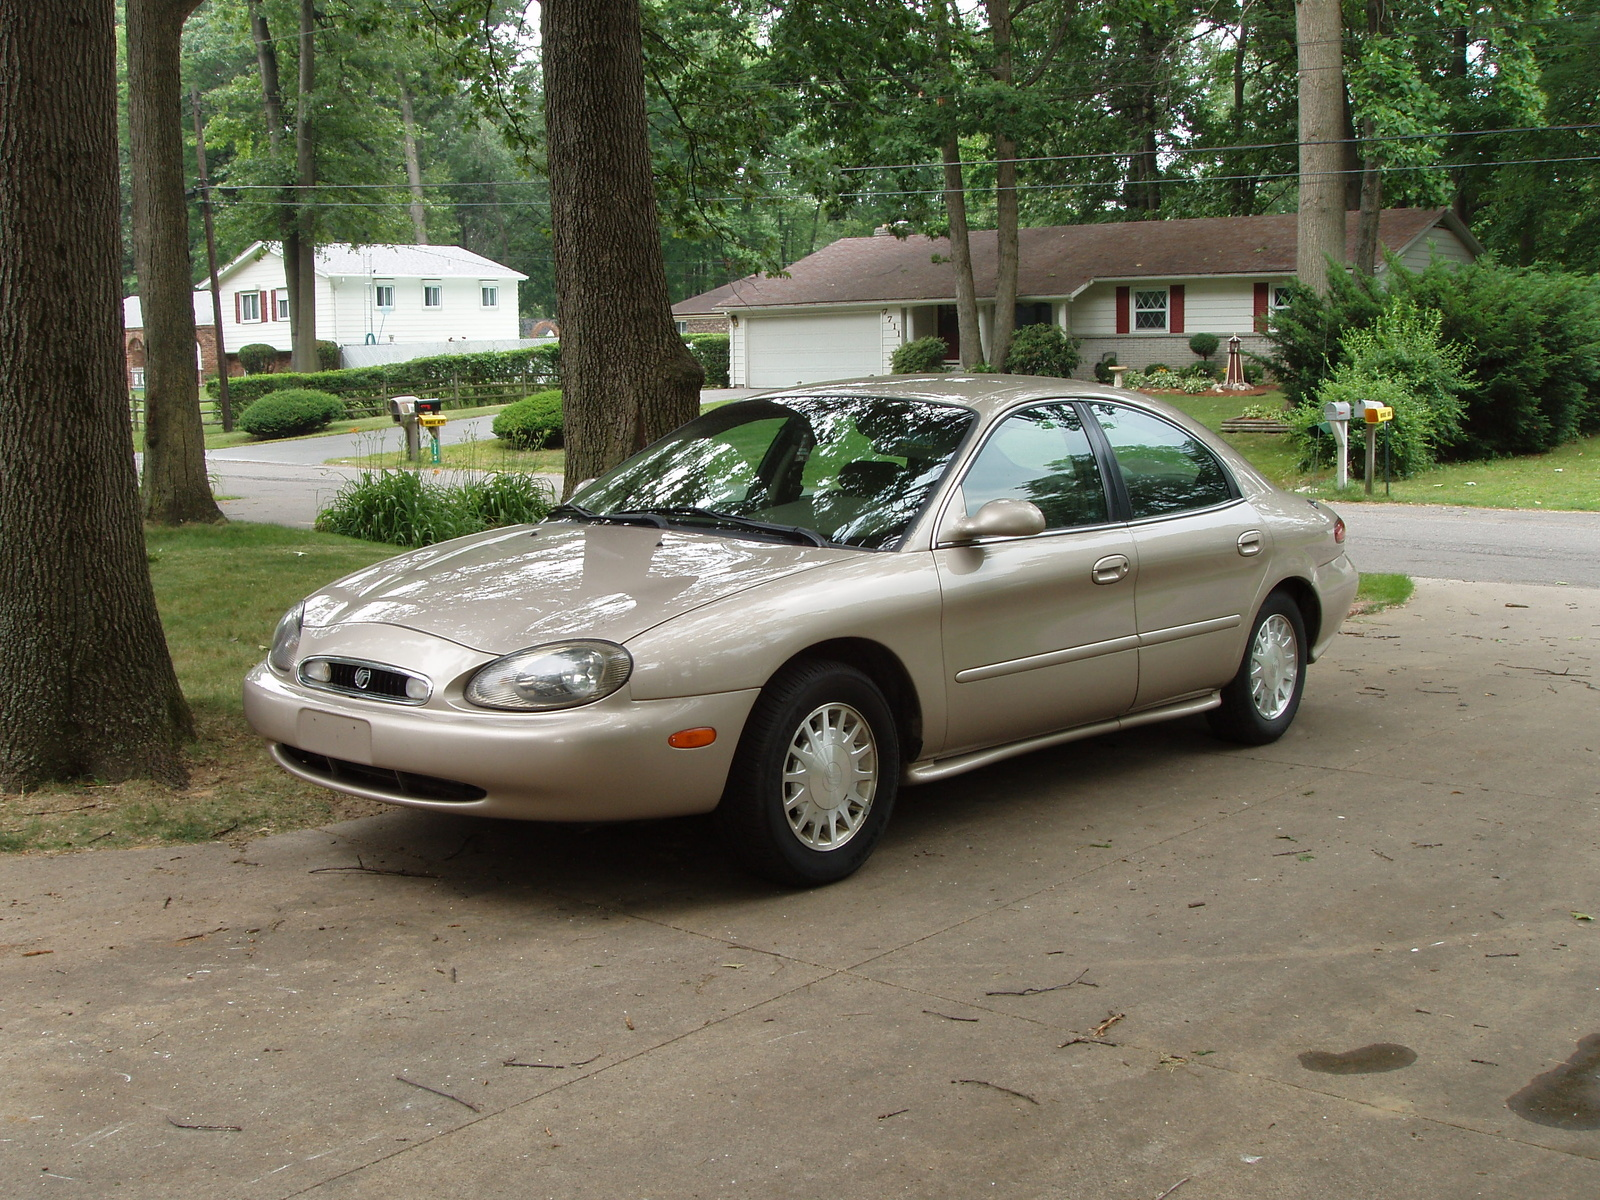 Picture of 1999 mercury sable 4 dr gs sedan exterior gallery_worthy